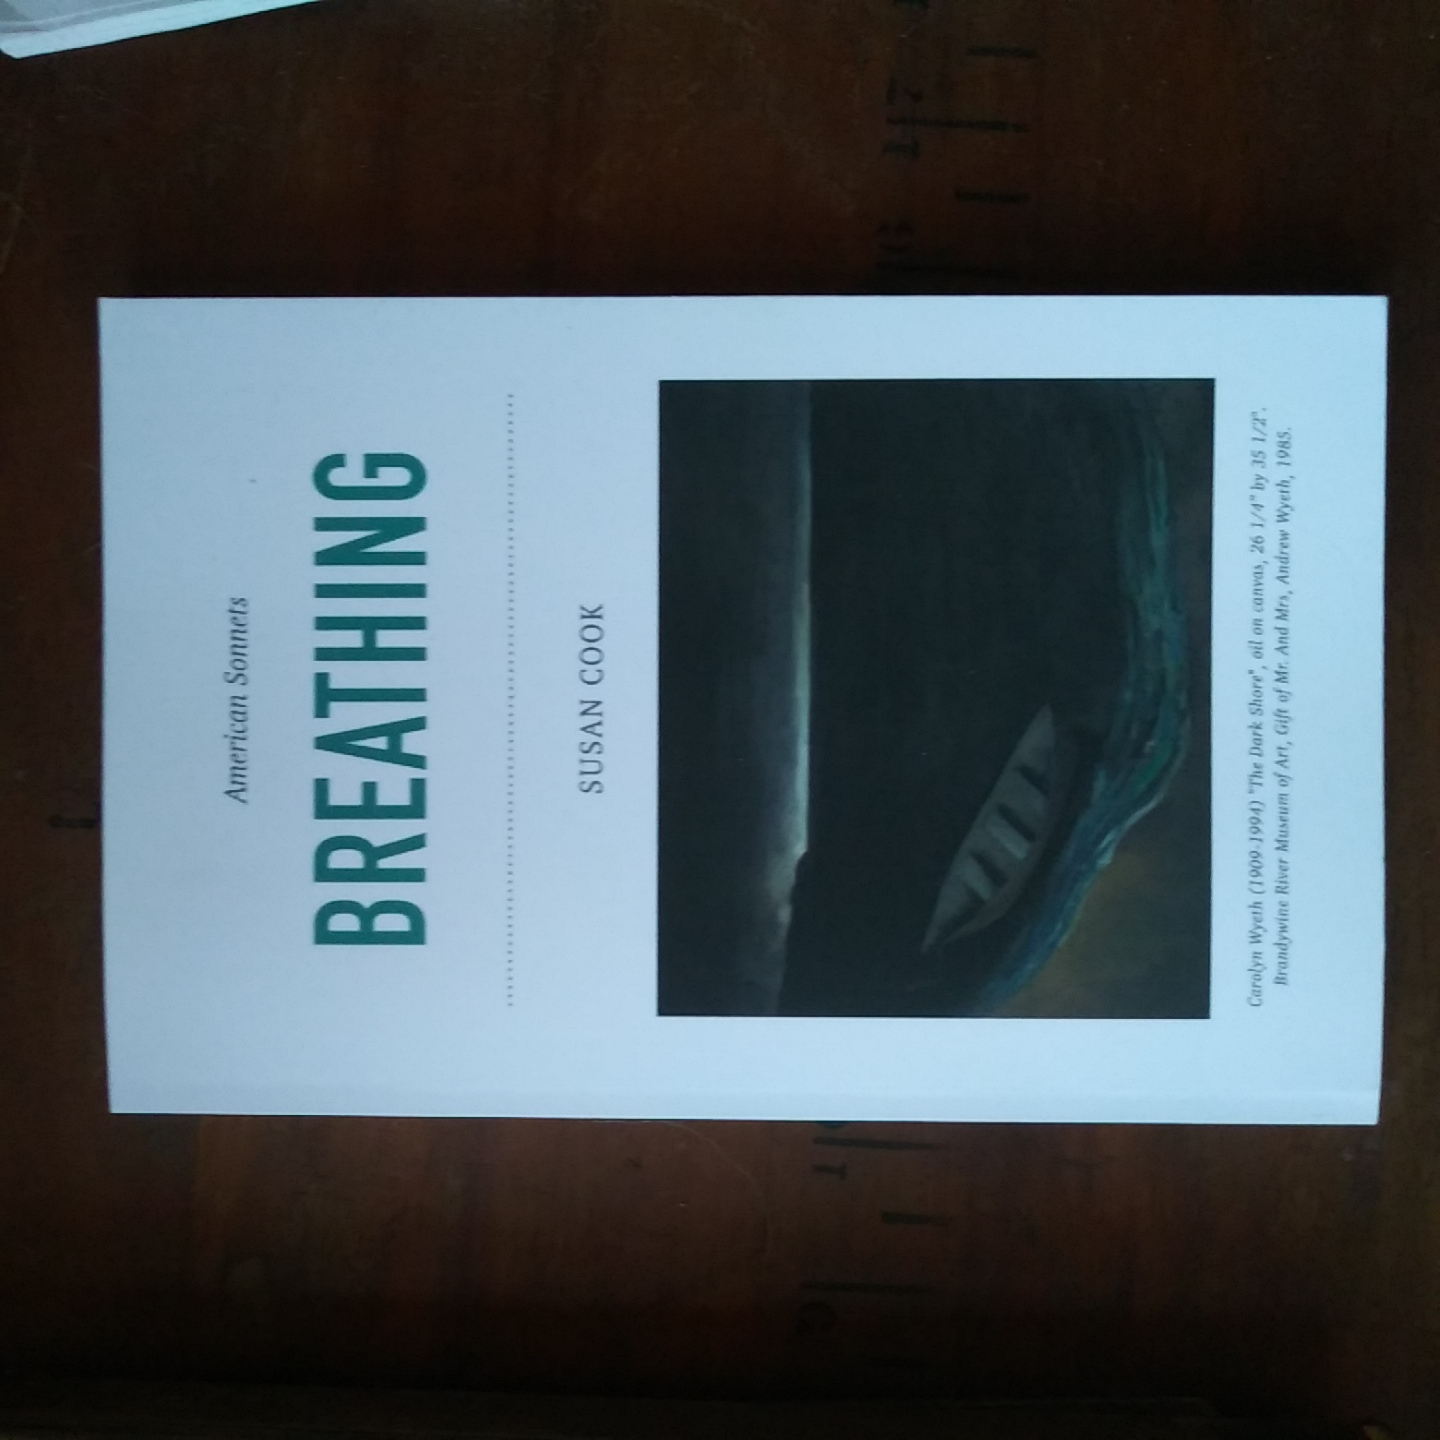 Caption: Breathing:American Sonnets on Bookshop.org + at Gulf Maine Books, Credit: Susan Cook